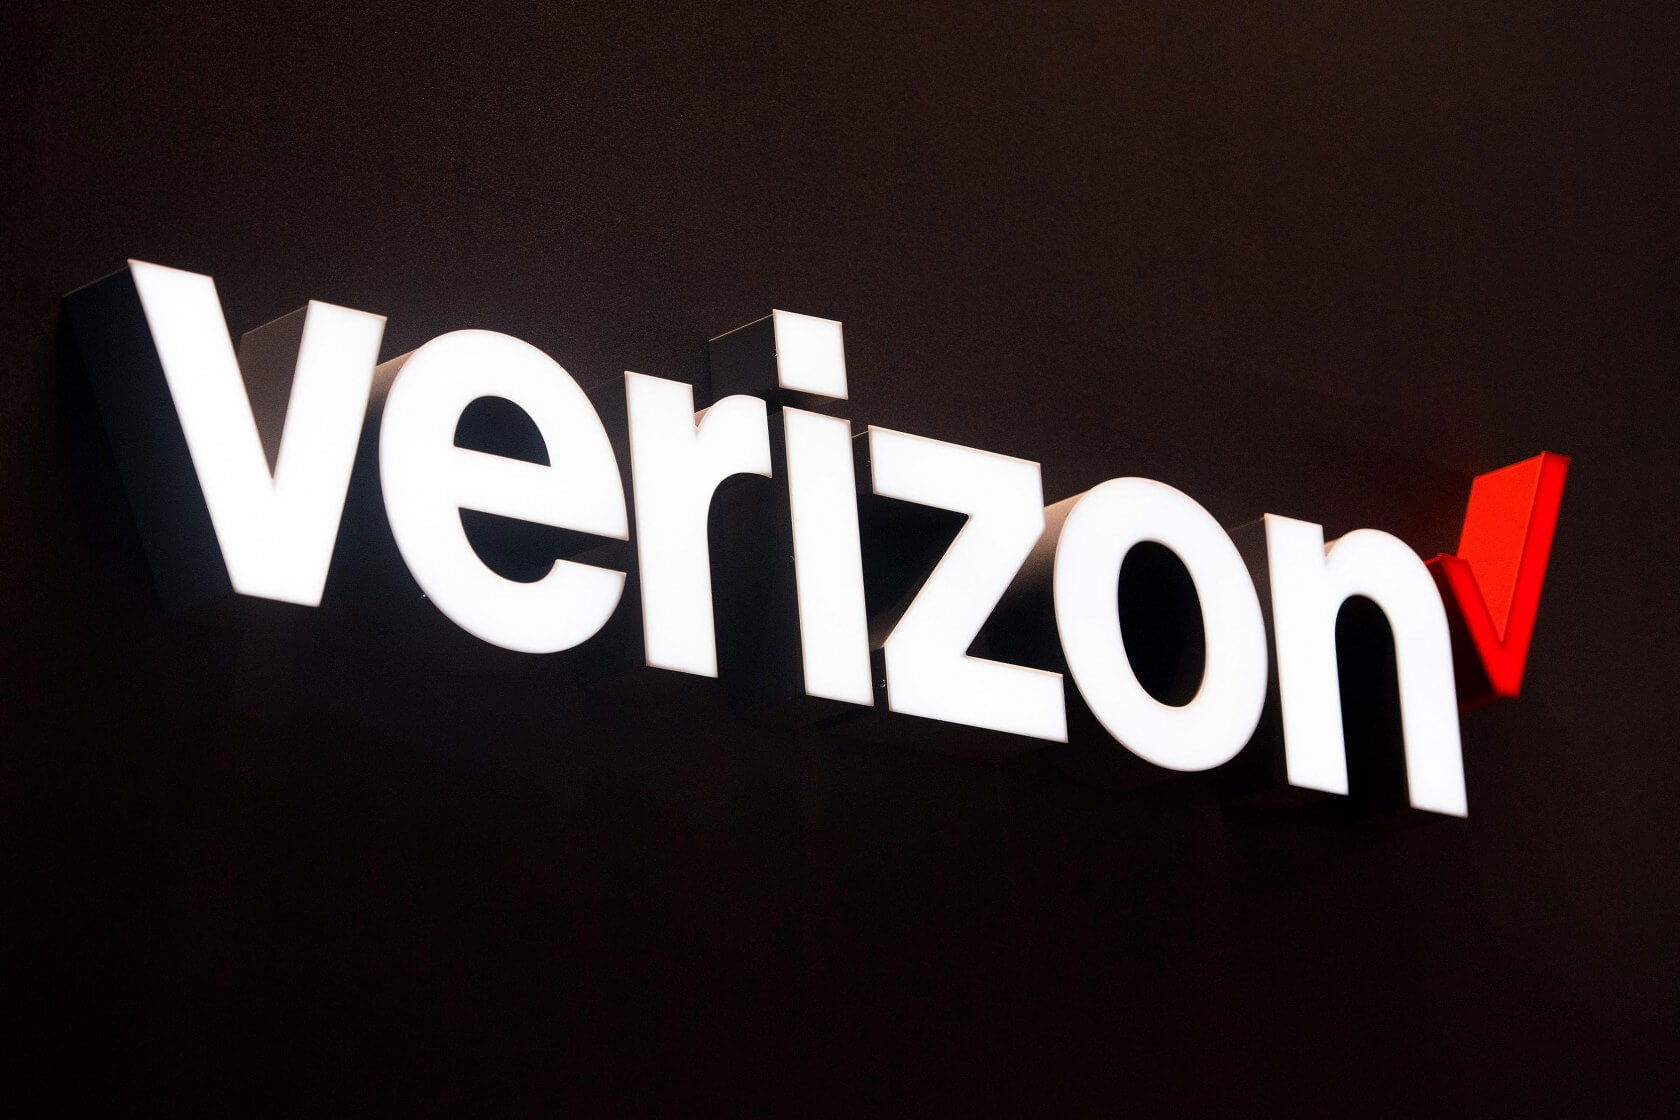 Verizon lifts broadband caps and offers free data upgrades to customers amidst COVID-19 outbreak